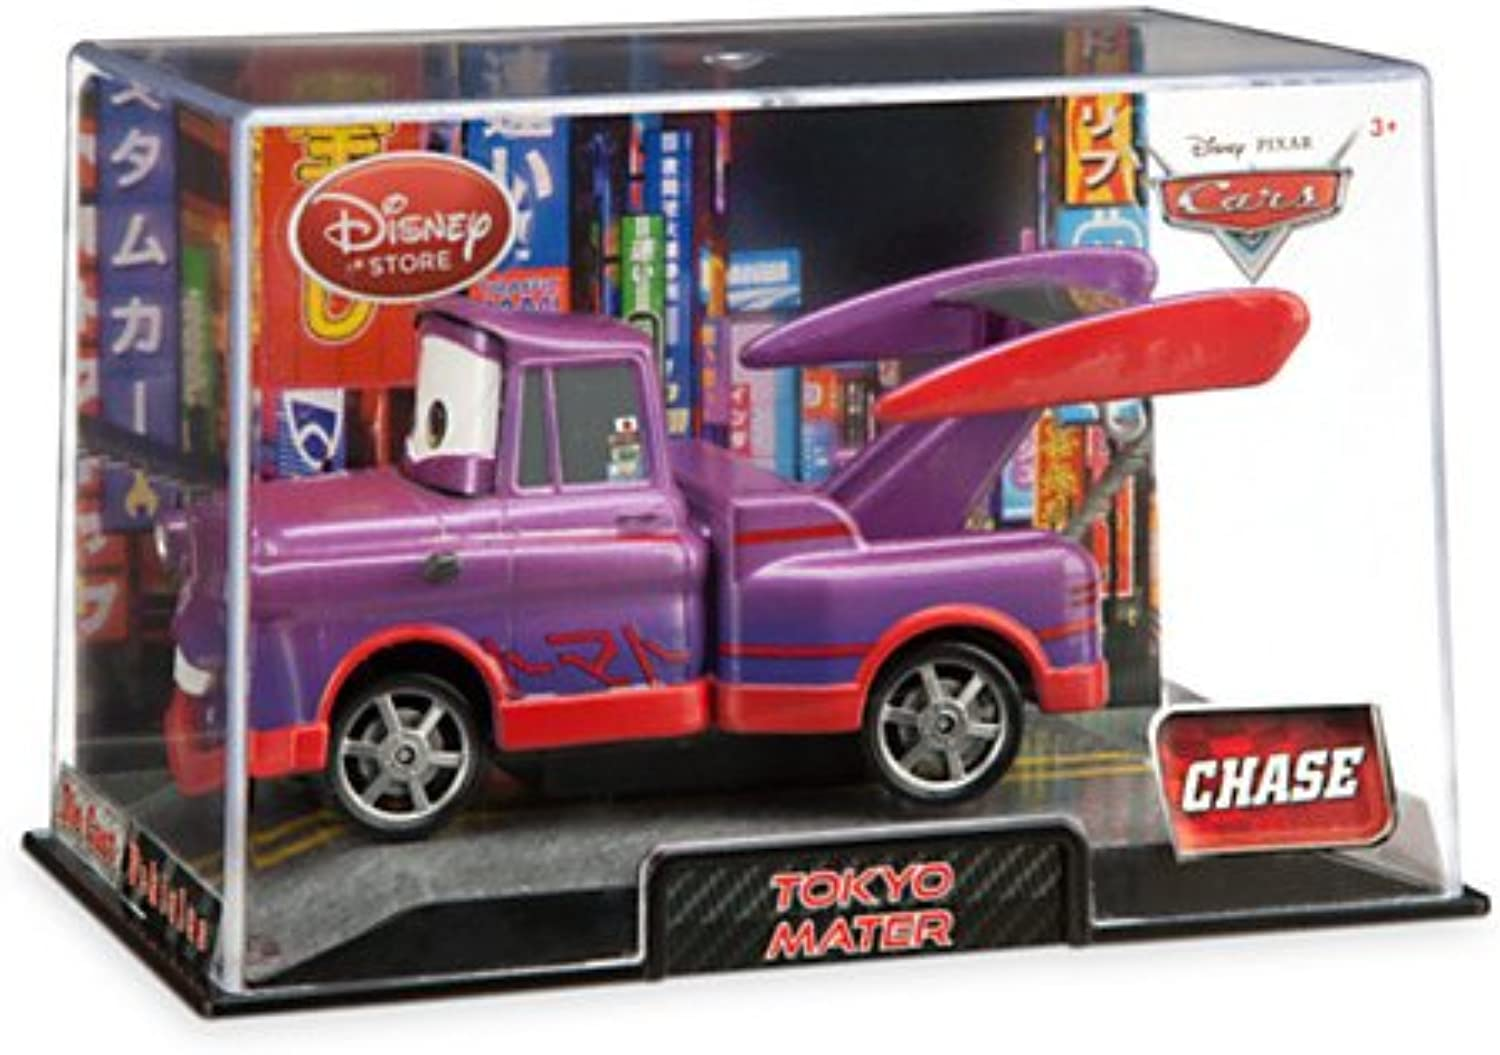 Disney Pixar Cars Exclusive 1 48 Die Cast Car Tokyo Mater   Hook (purple)  Chase  (Disneystore exclusive)  limited edition